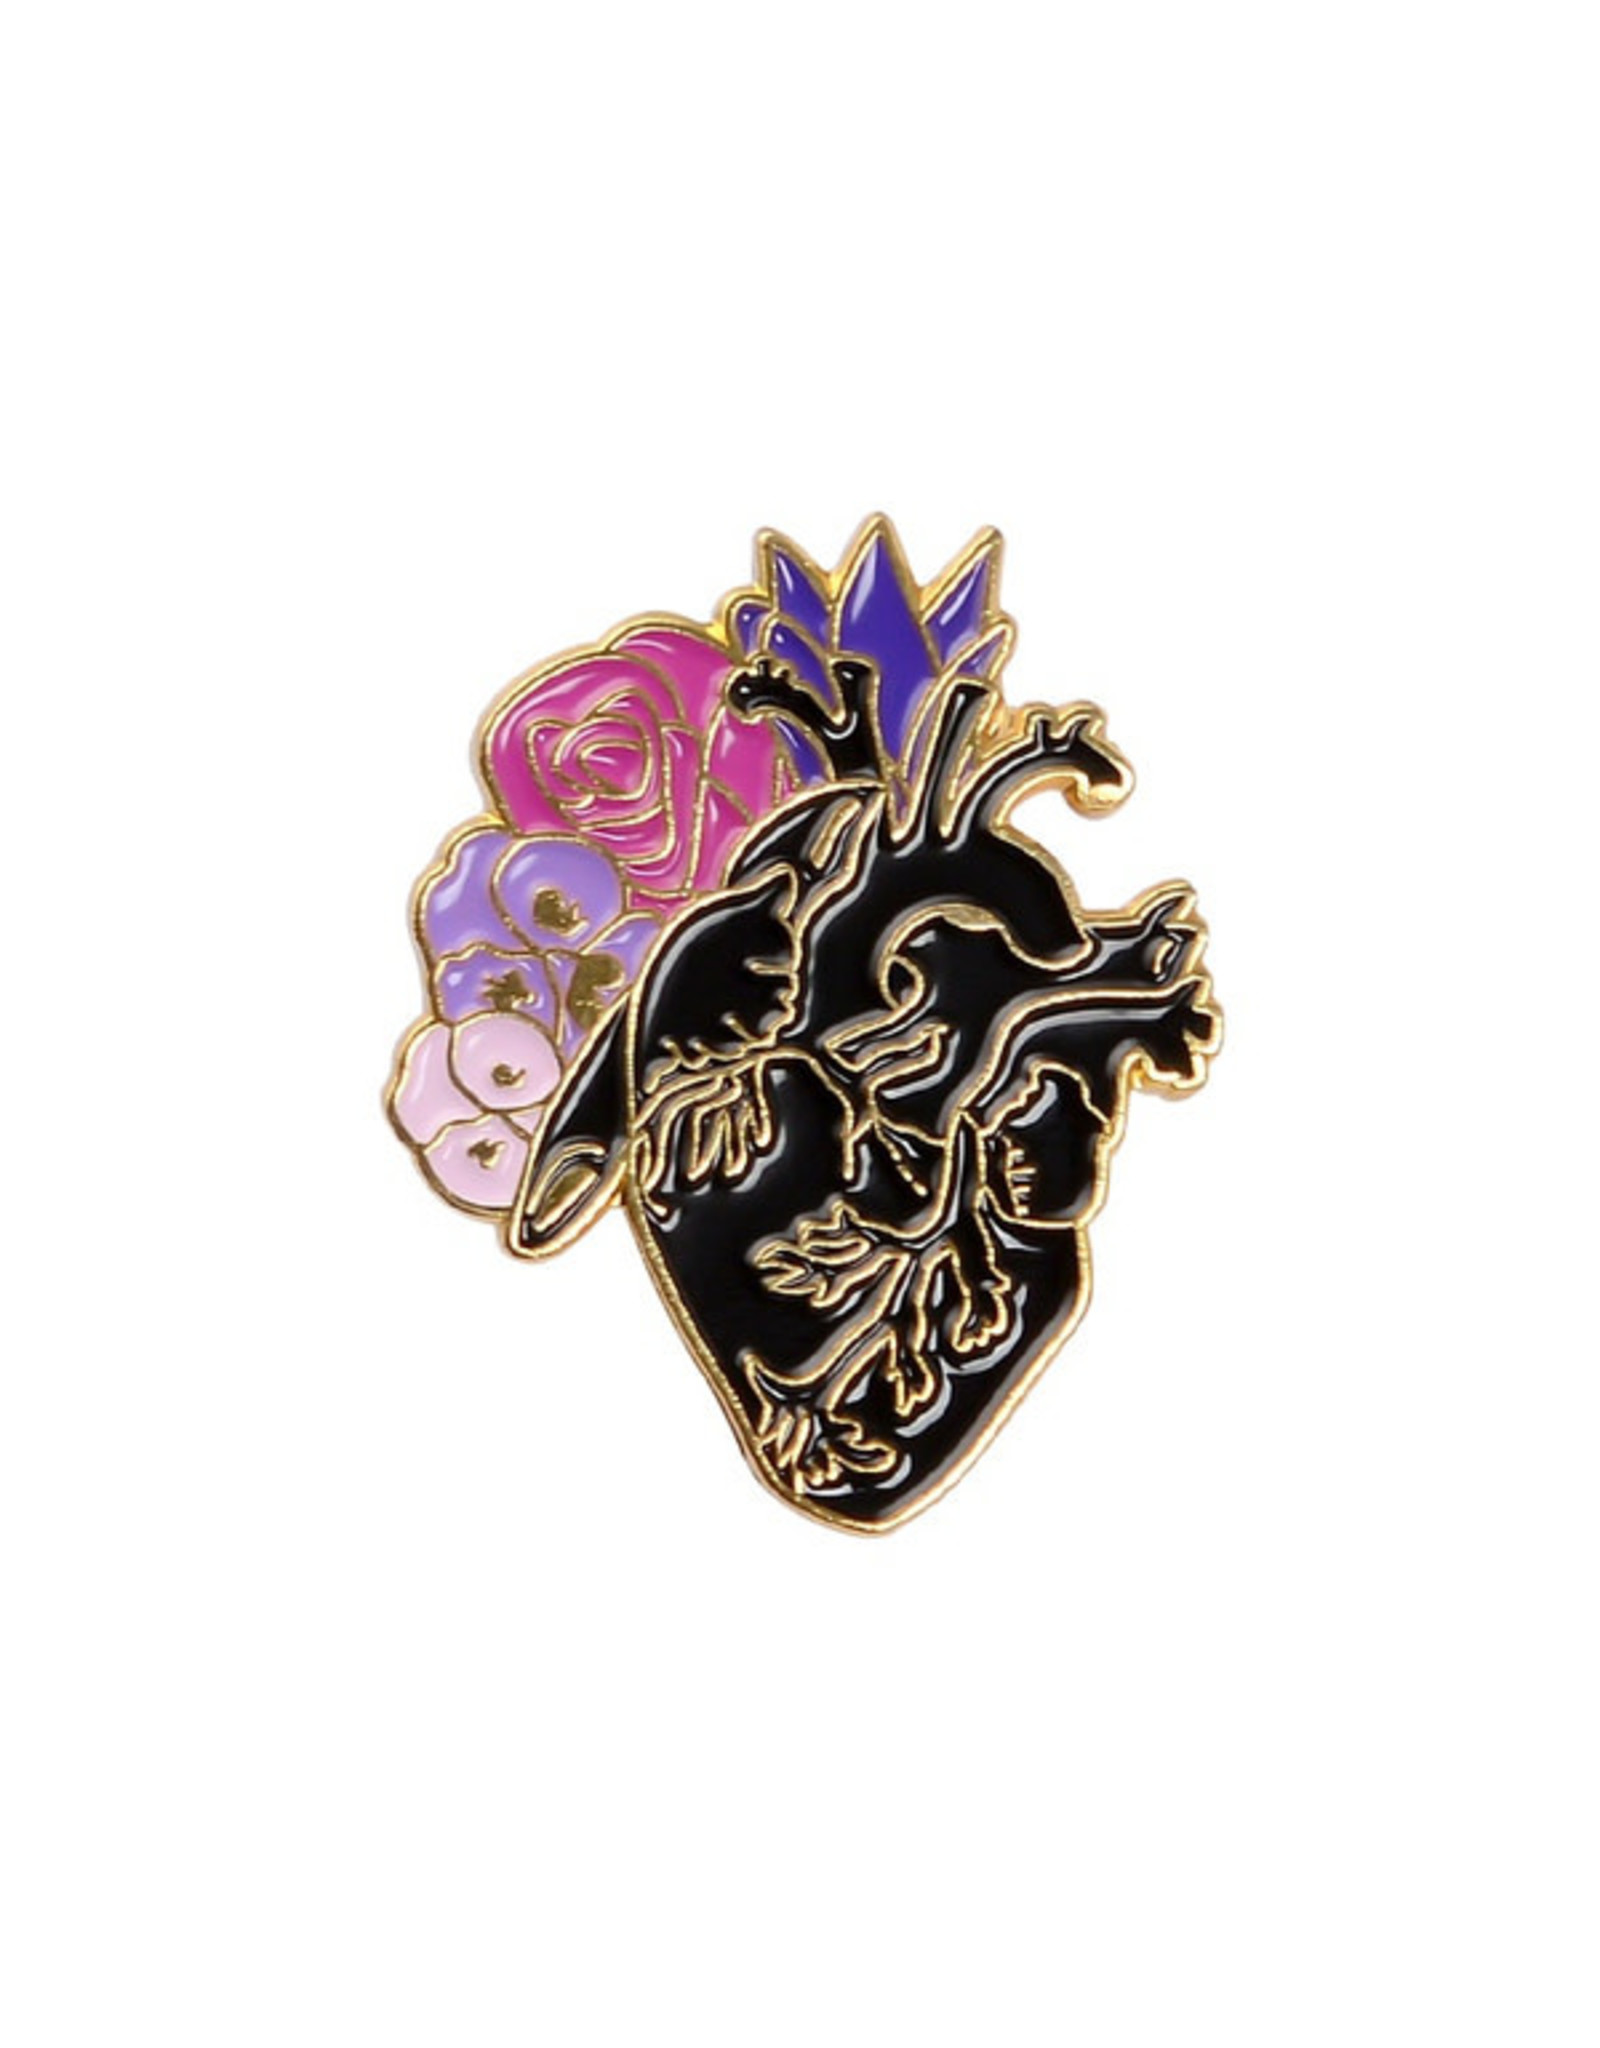 Pin - Heart With Flowers - Black